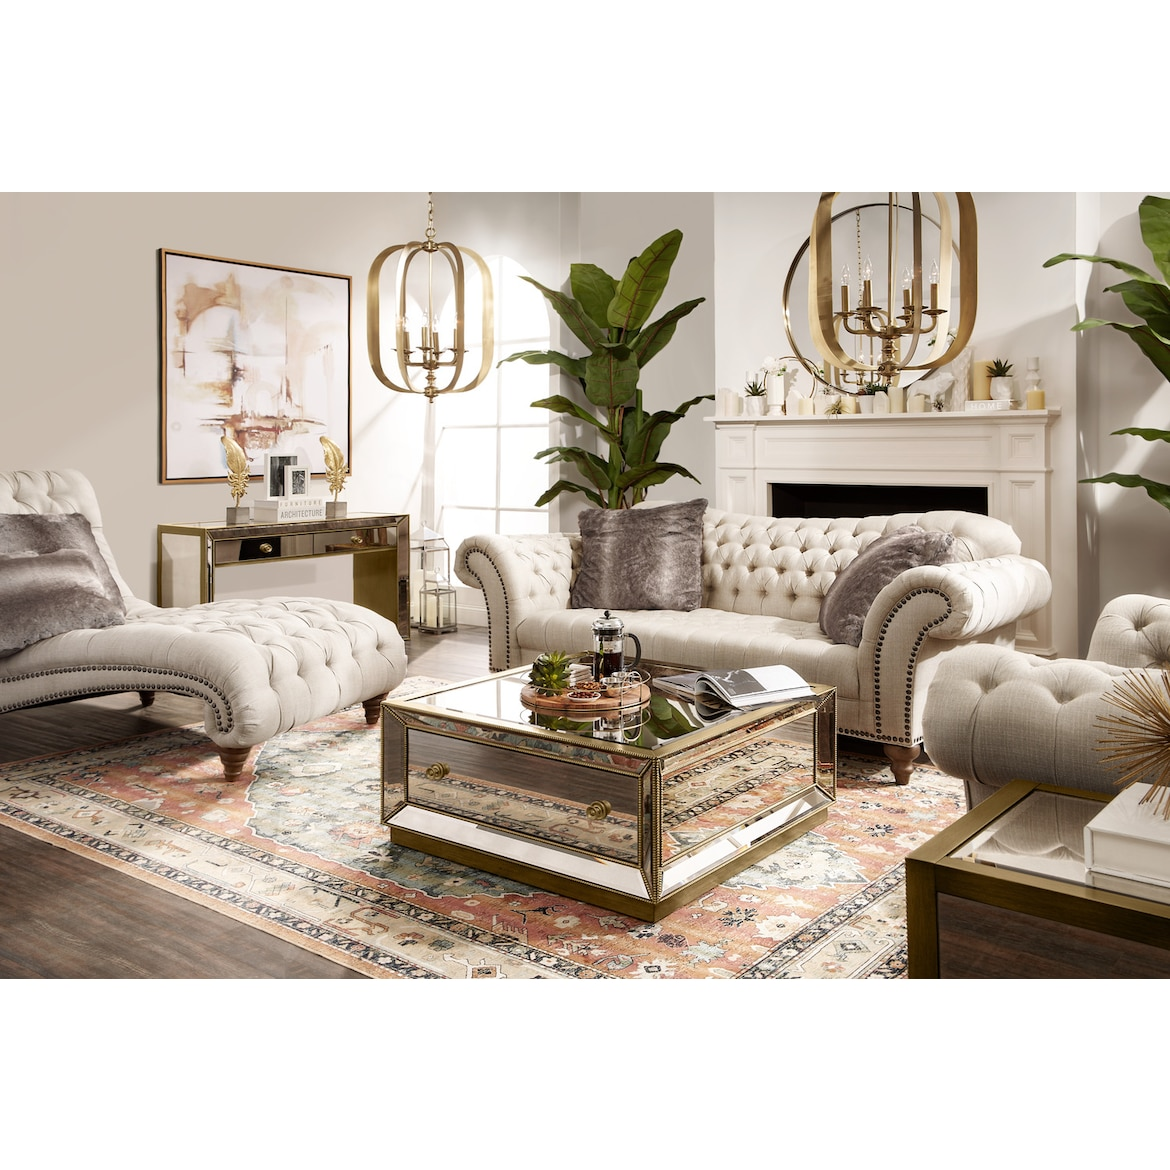 Reflection Coffee Table - Antiqued Mirror | Value City Furniture and ...